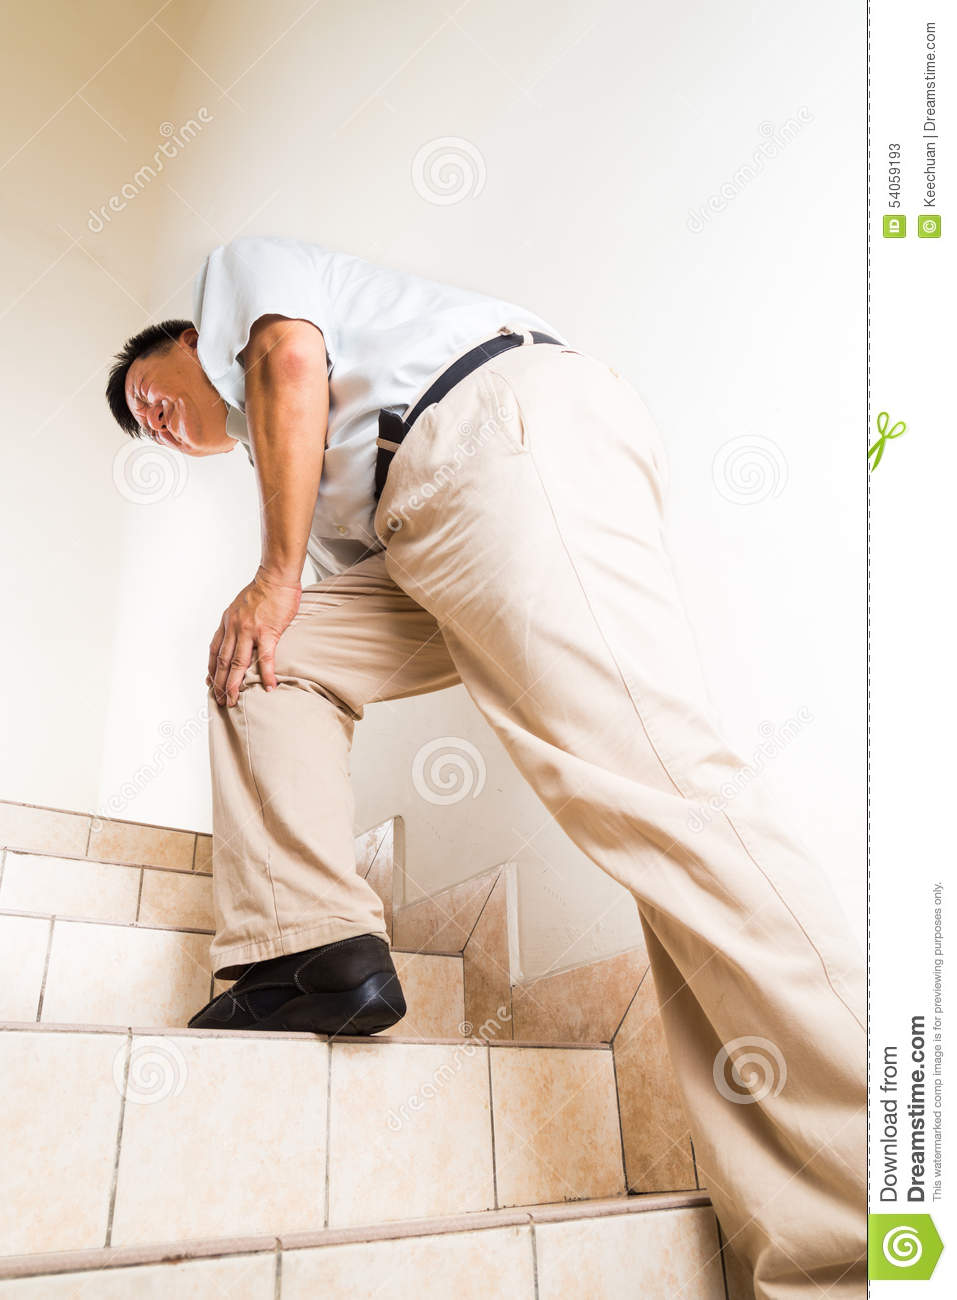 Matured Man Suffering Acute Knee Joint Pain Climbing Stairs Stock Image -  Image of ache, glue: 54059193